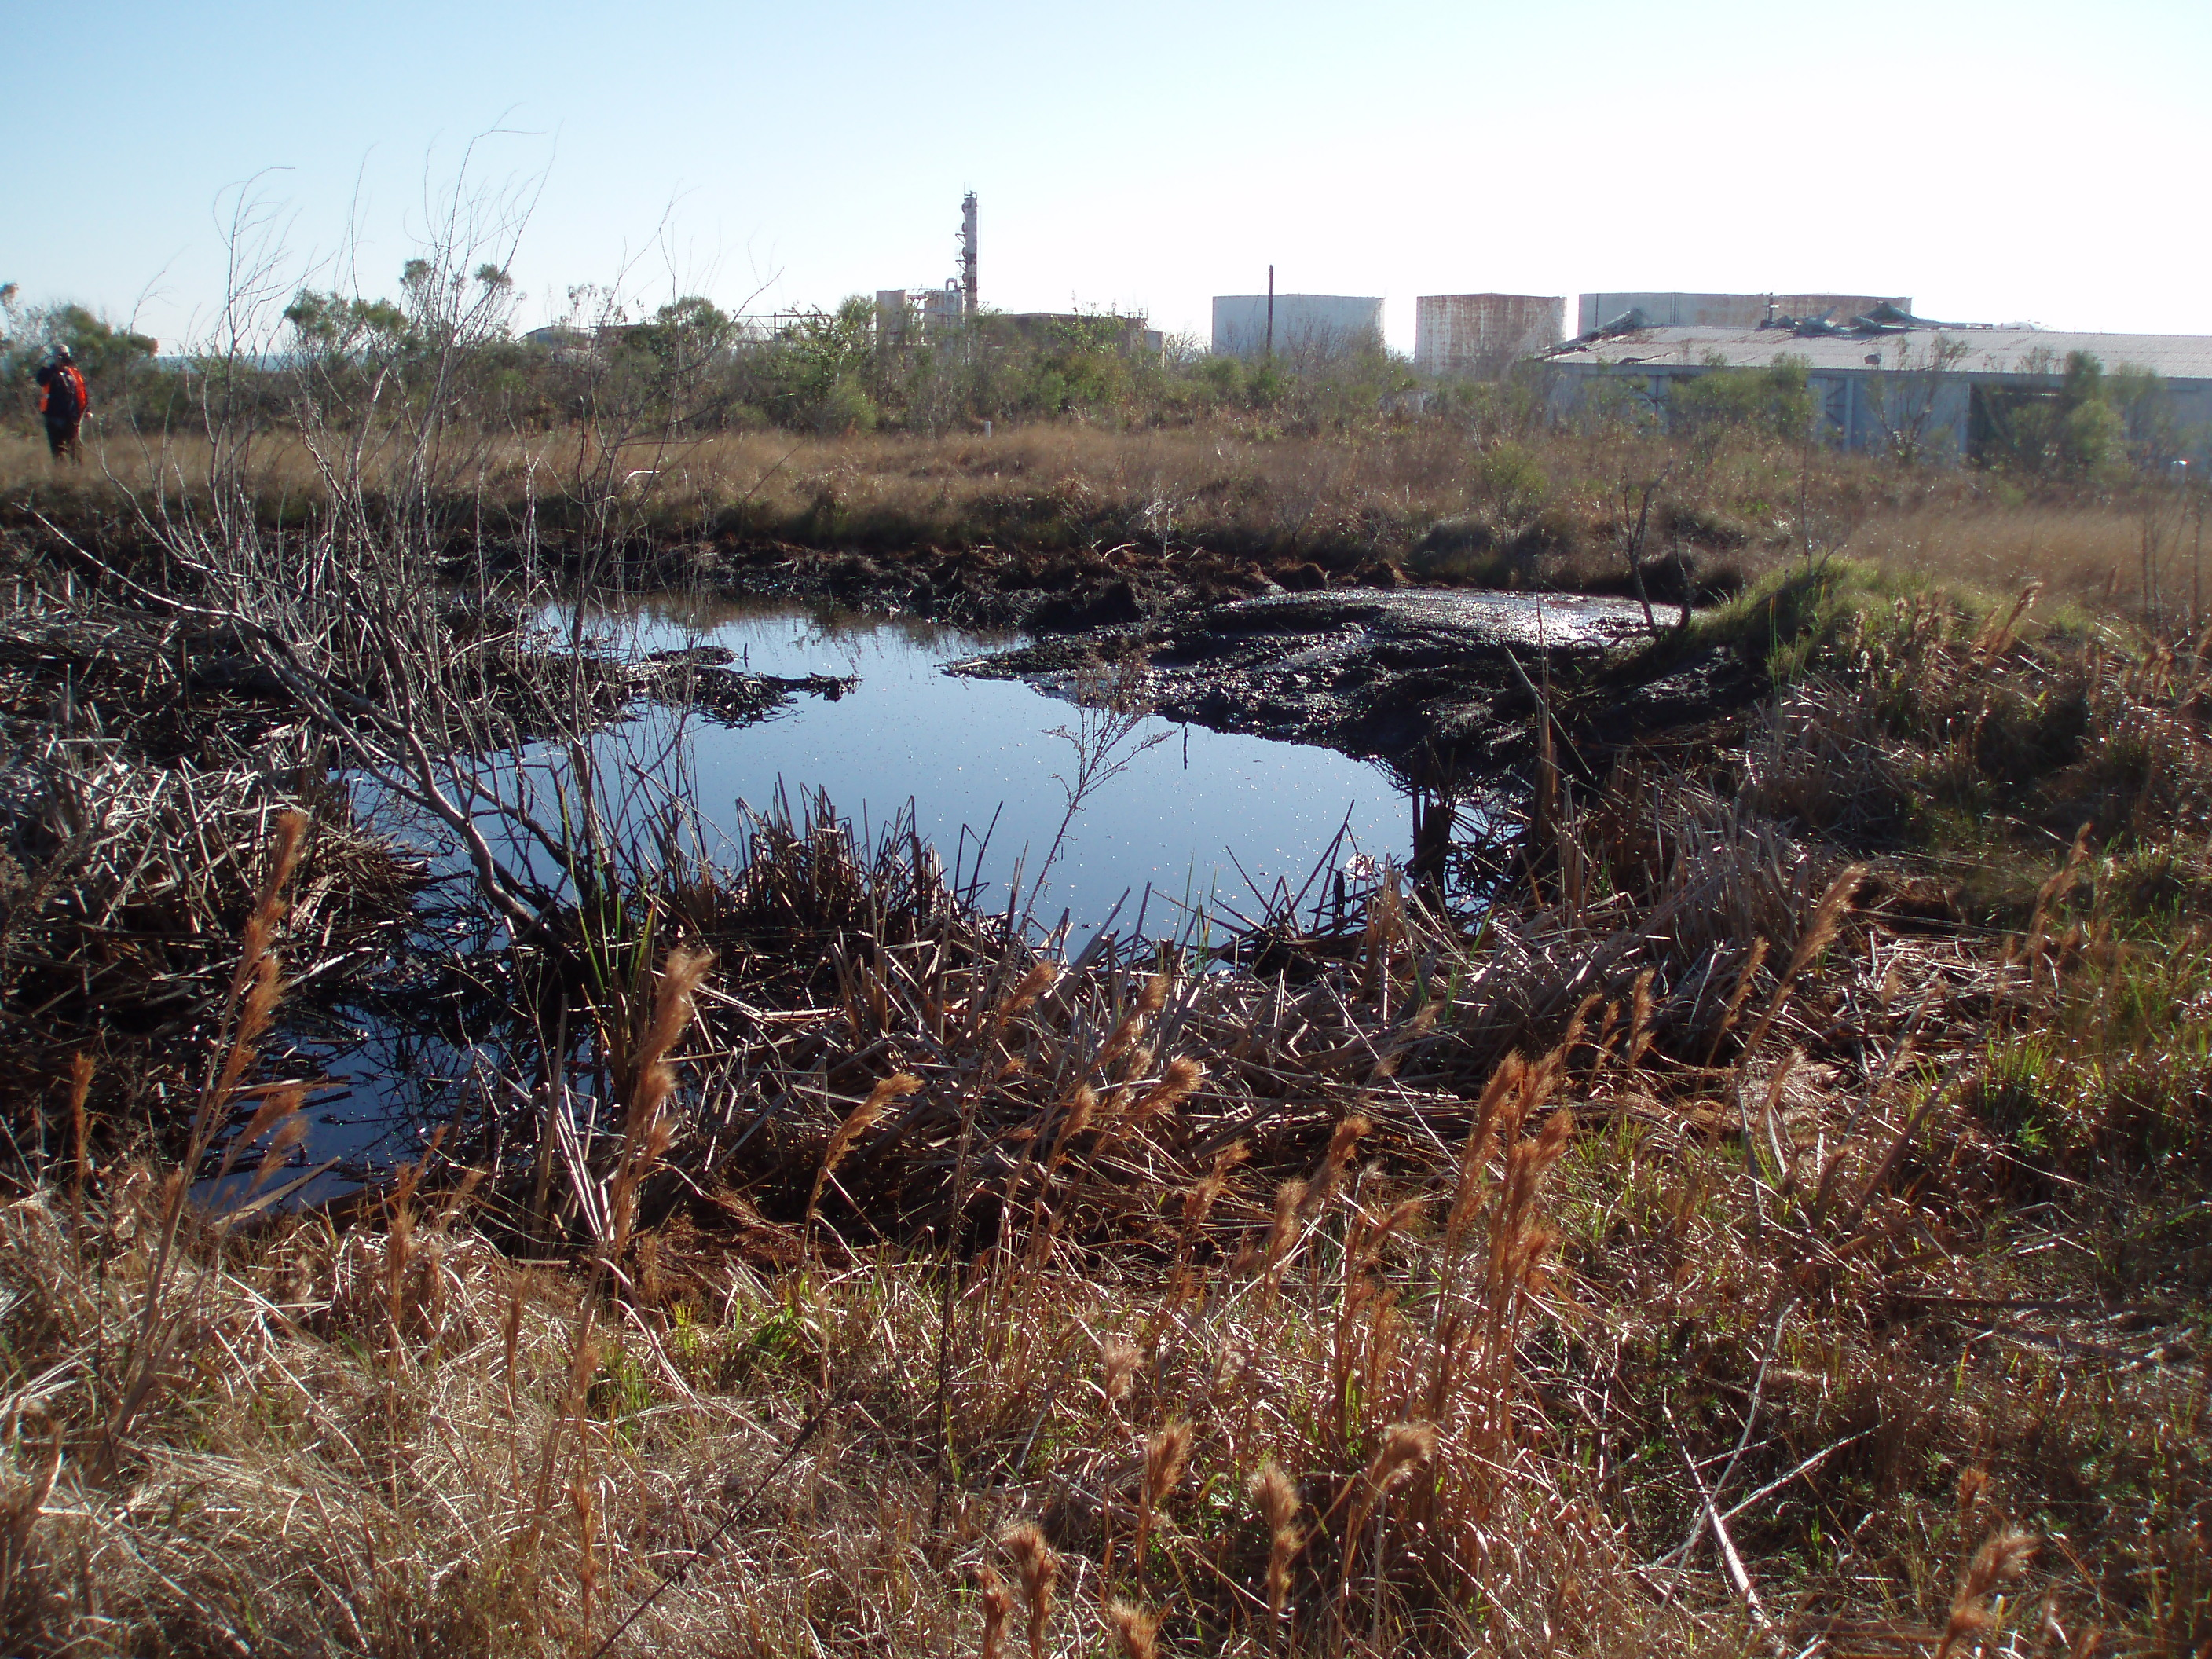 Image of oil pits left over from chemical and oil processing from 1964 to 1996.